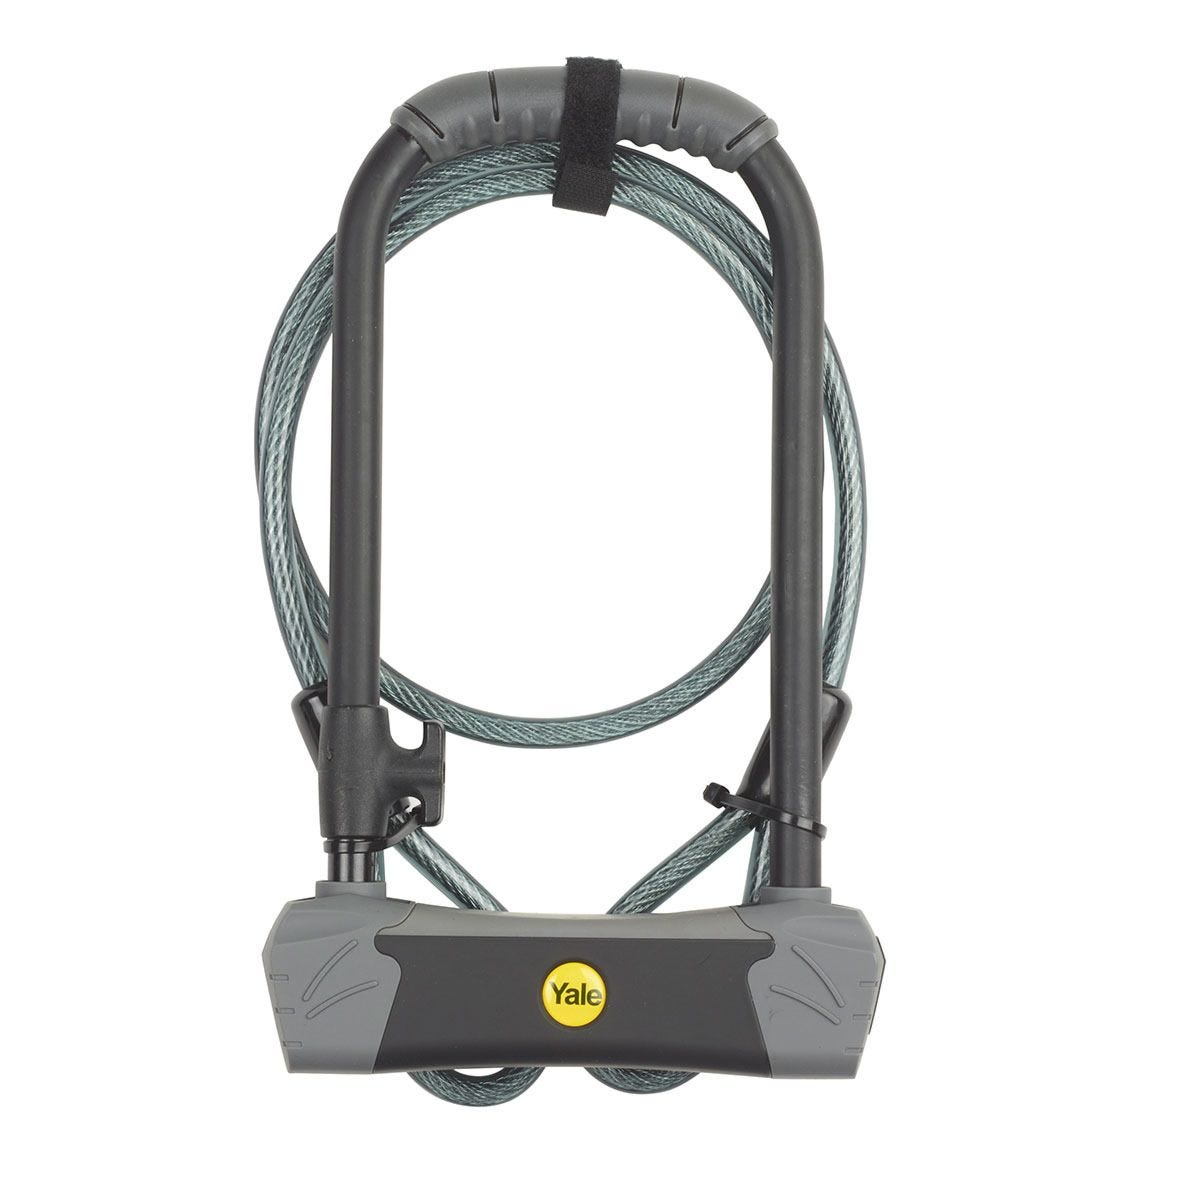 Yale Maximum Security Bike Lock with Cable